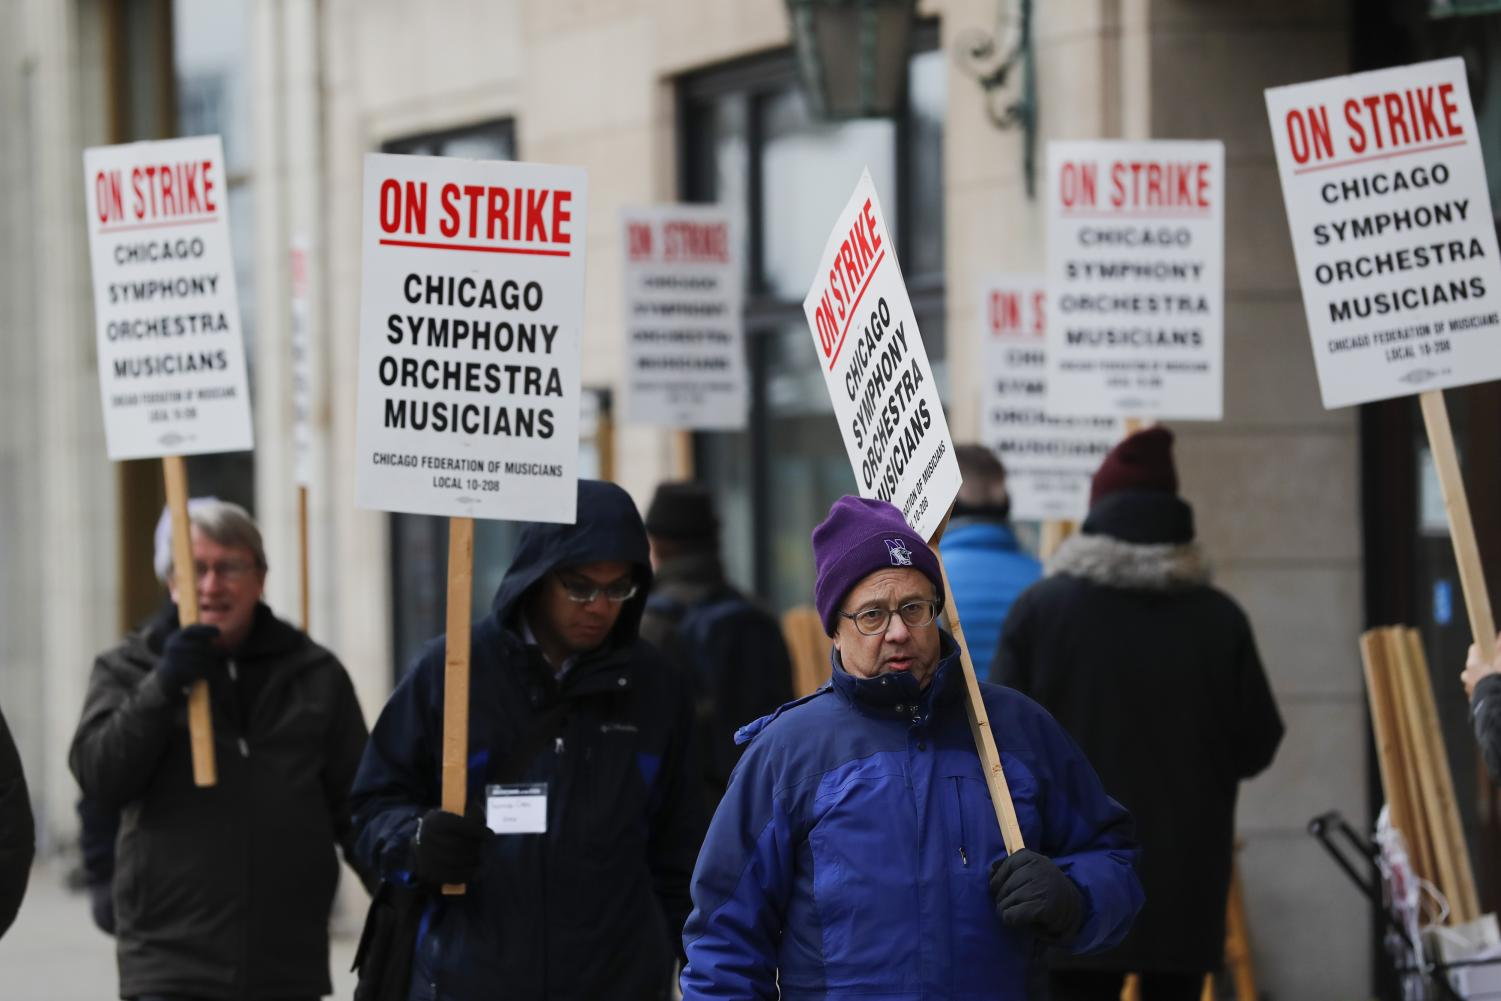 In this Monday, March 11, 2019 file photo, striking Chicago Symphony Orchestra musicians walk the picket line outside of Symphony Center in Chicago. On Saturday, April 27, 2019, negotiators for the Chicago Symphony Orchestra and musicians said they have reached an agreement to end the seven-week strike.